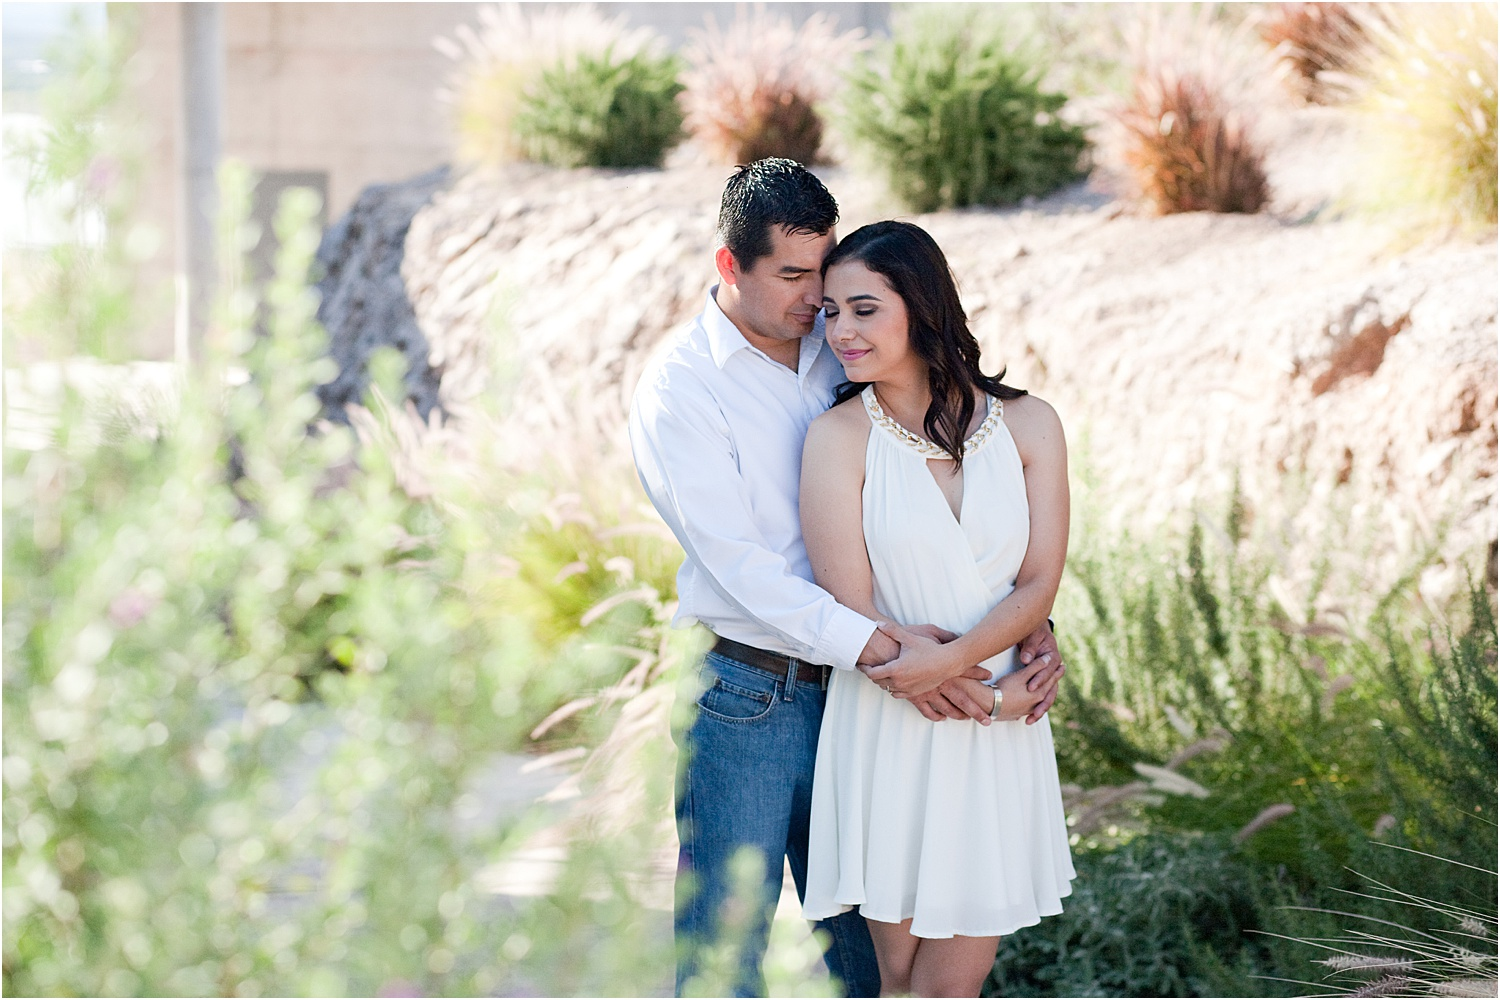 6 - Guide to the Best Poses for Engagement Photos